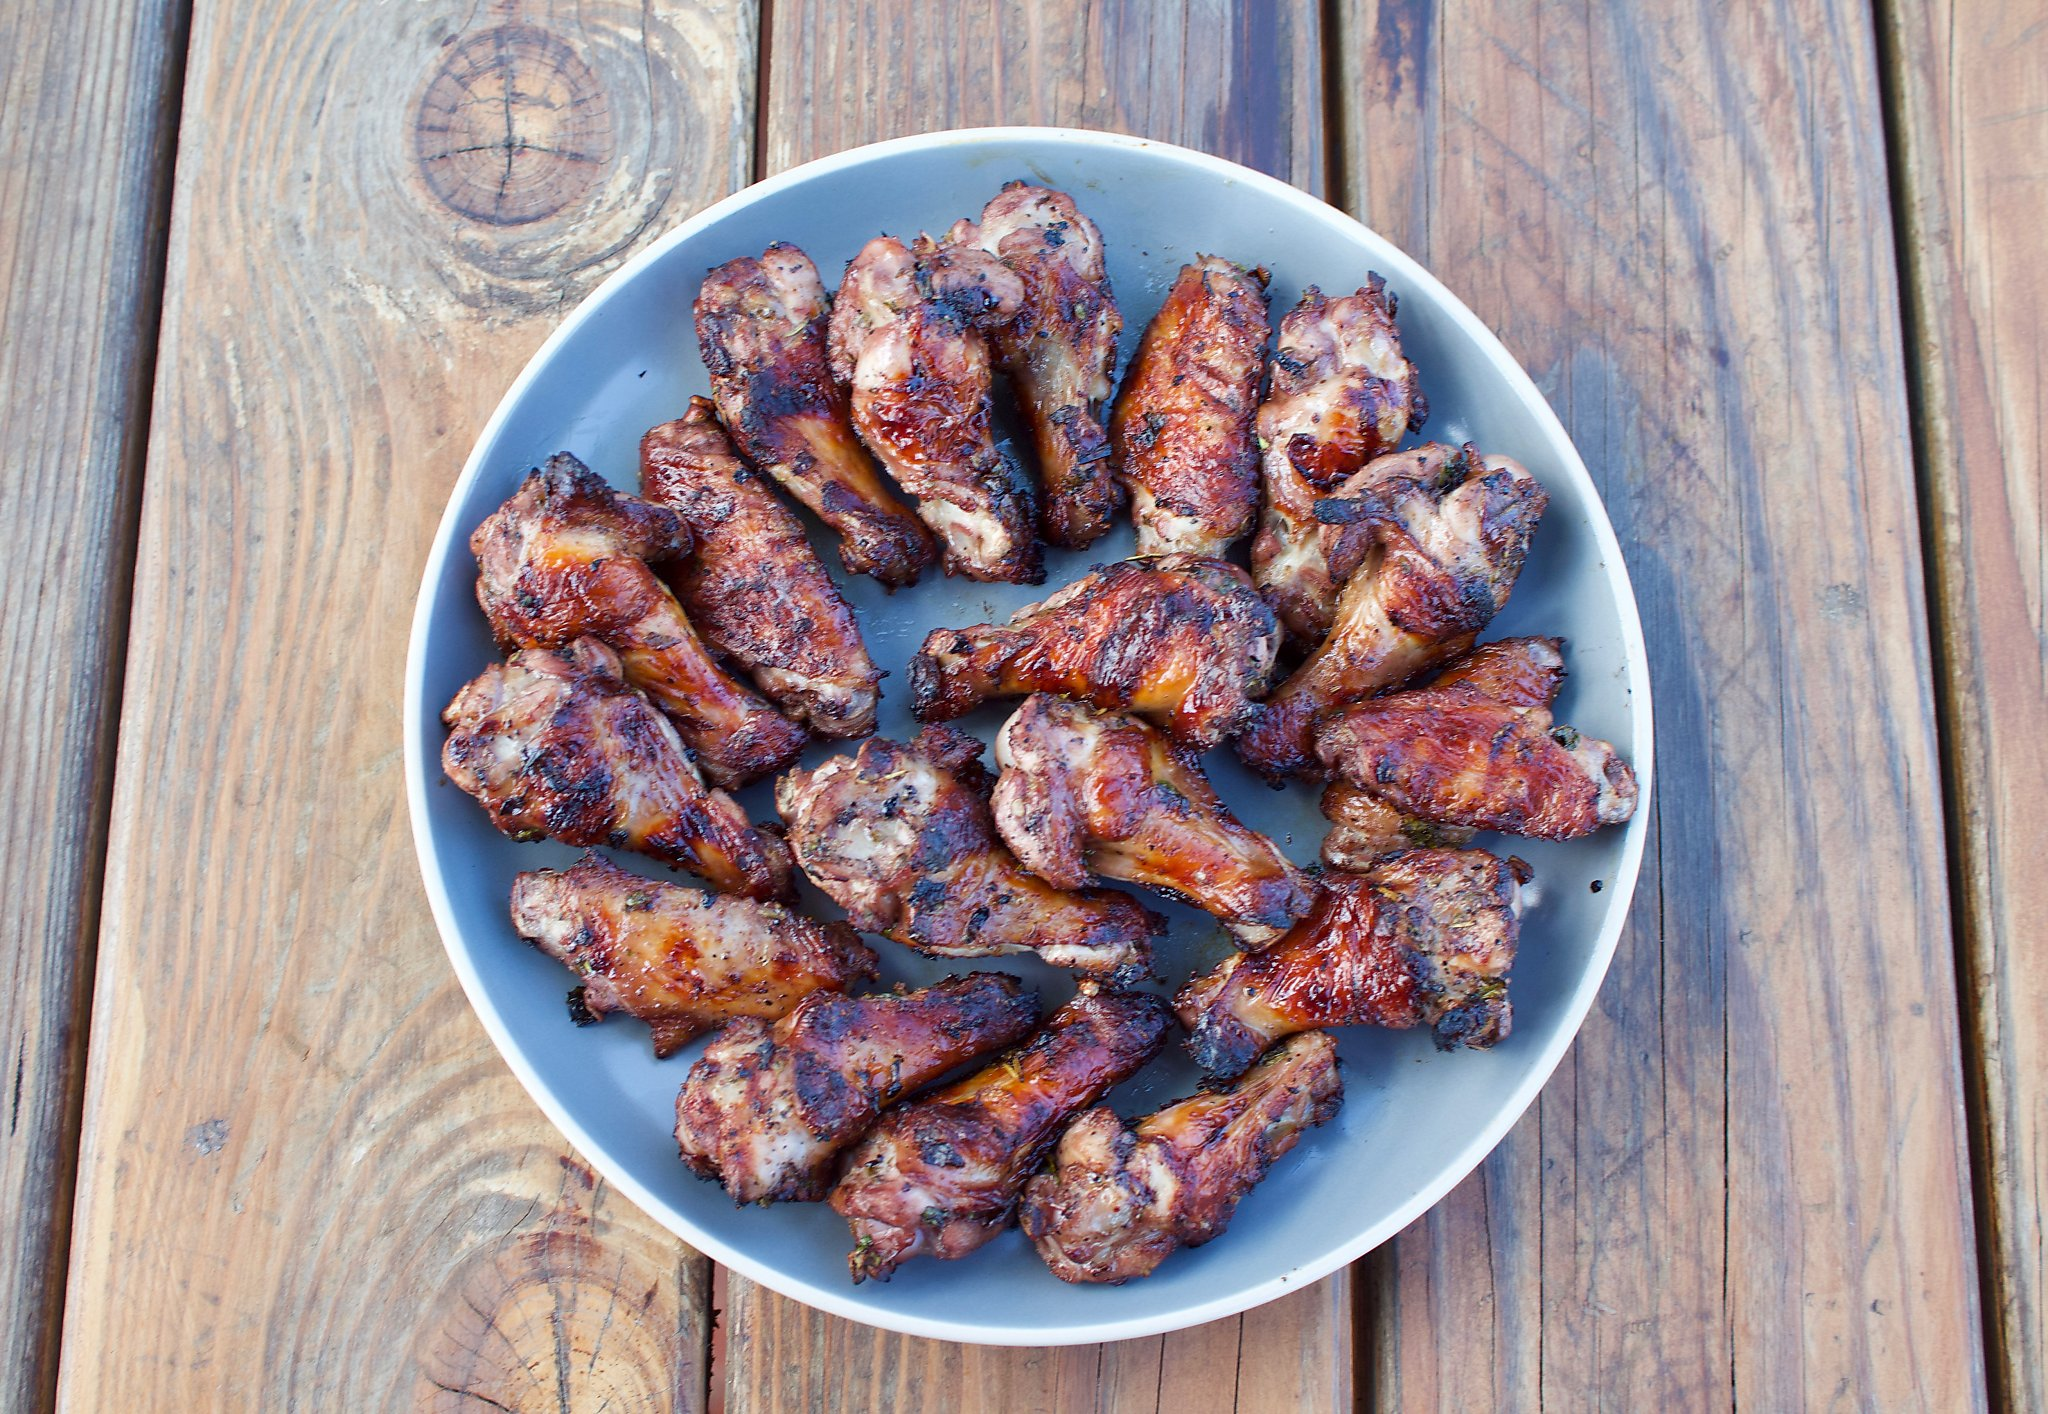 Barbecued Brazilian-style red-wine chicken wings bring unforgettable zing